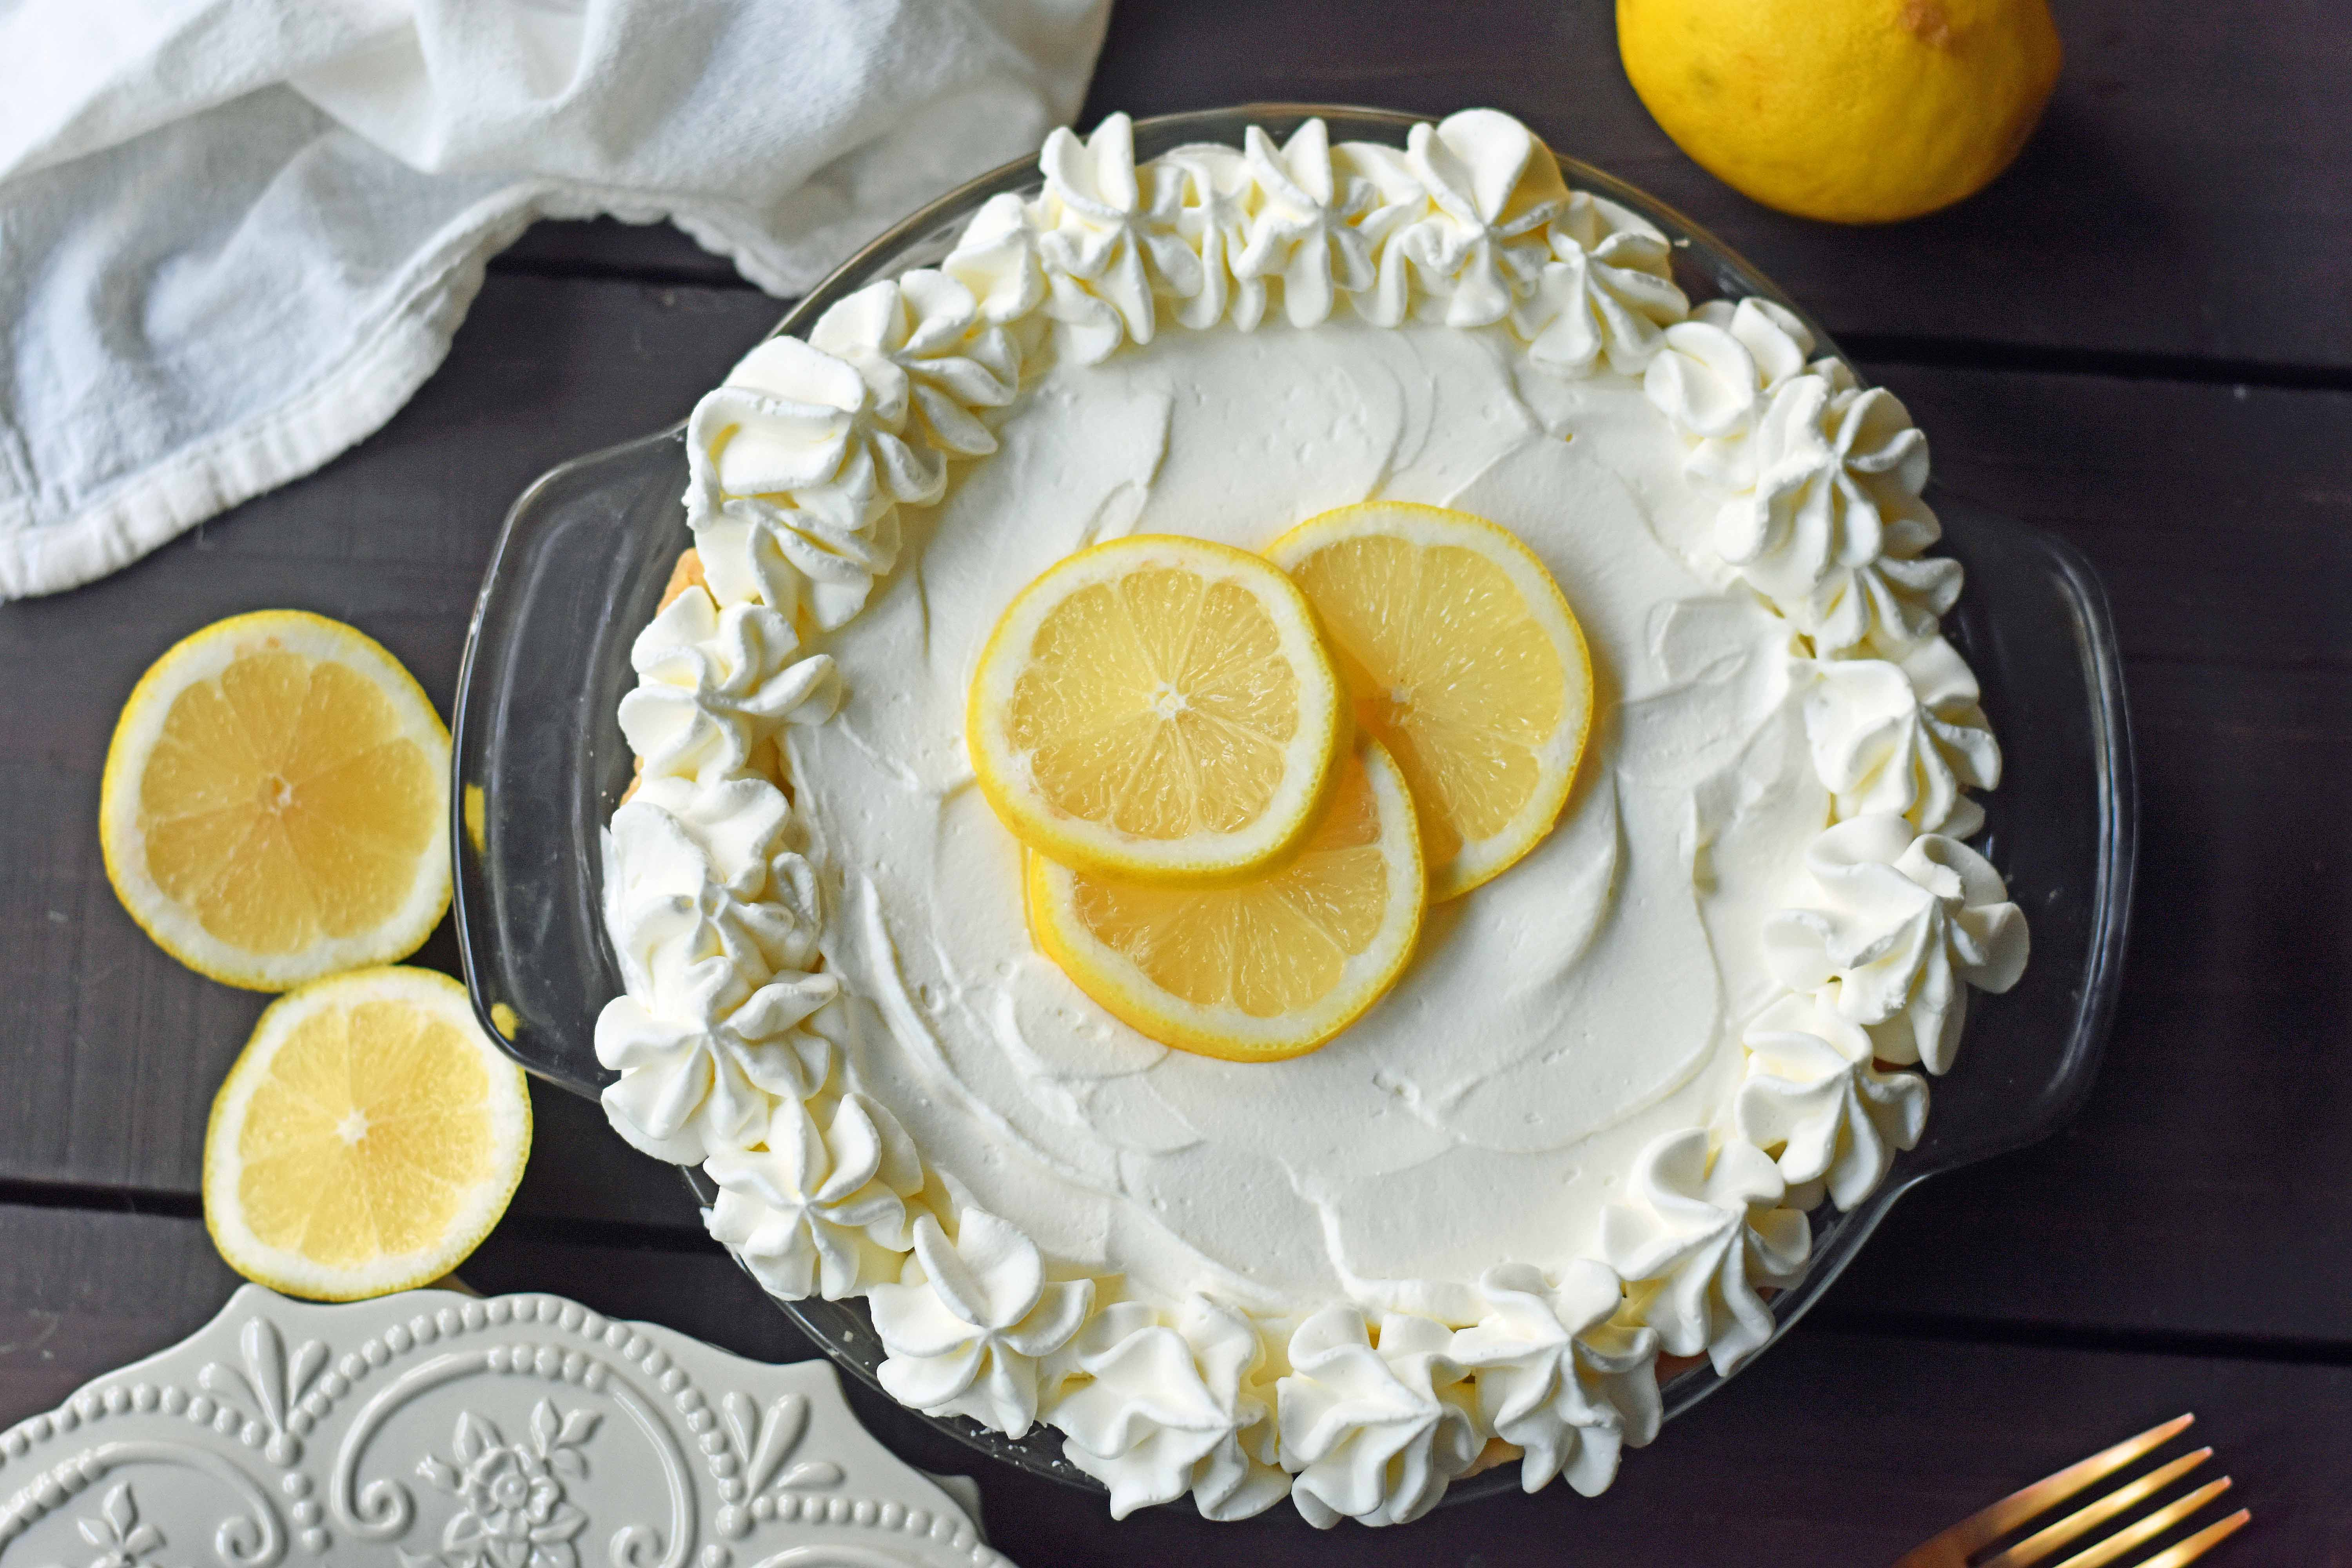 Sweet Lemon Sour Cream Pie made with freshly squeezed lemon juice, sugar, eggs, and sour cream to make it rich and creamy. All topped with homemade whipped cream in a buttery, flaky crust